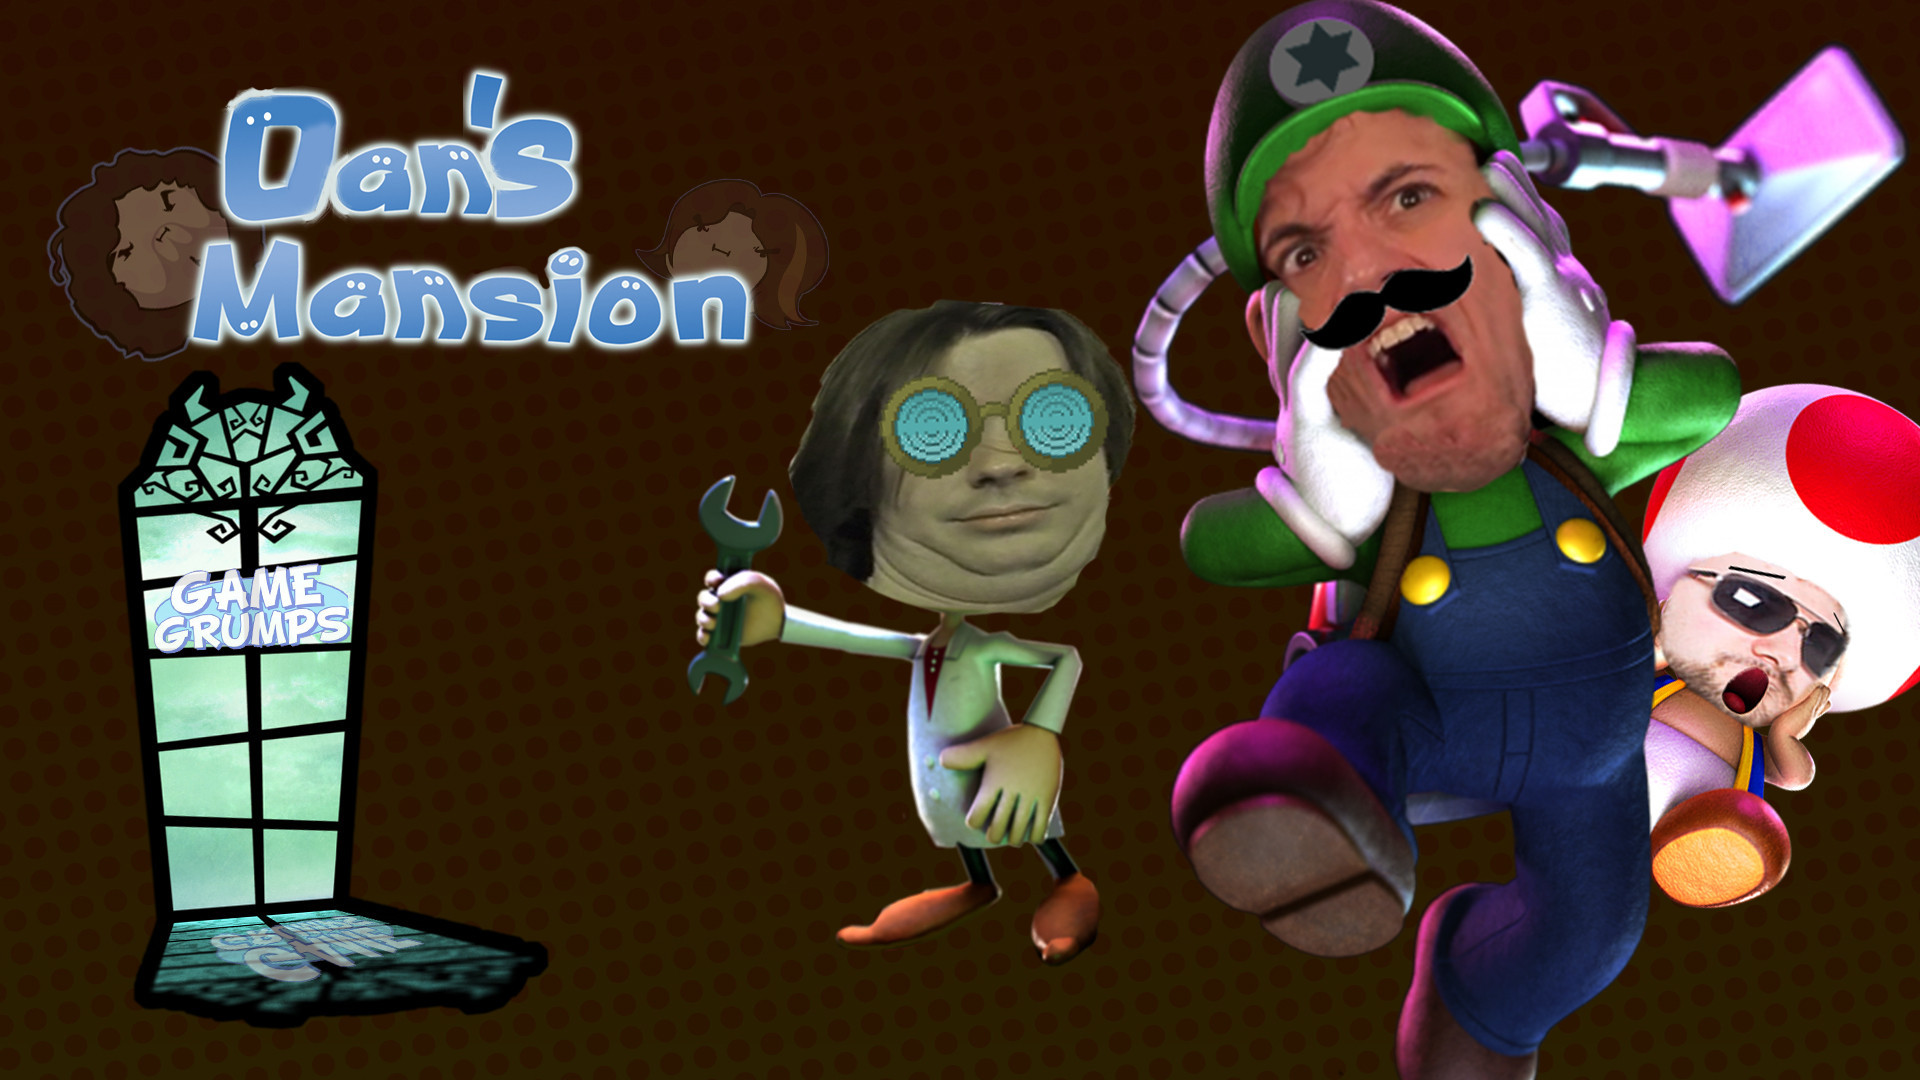 1920x1080 In hopes that Luigi's Mansion comes back soon, I made this.